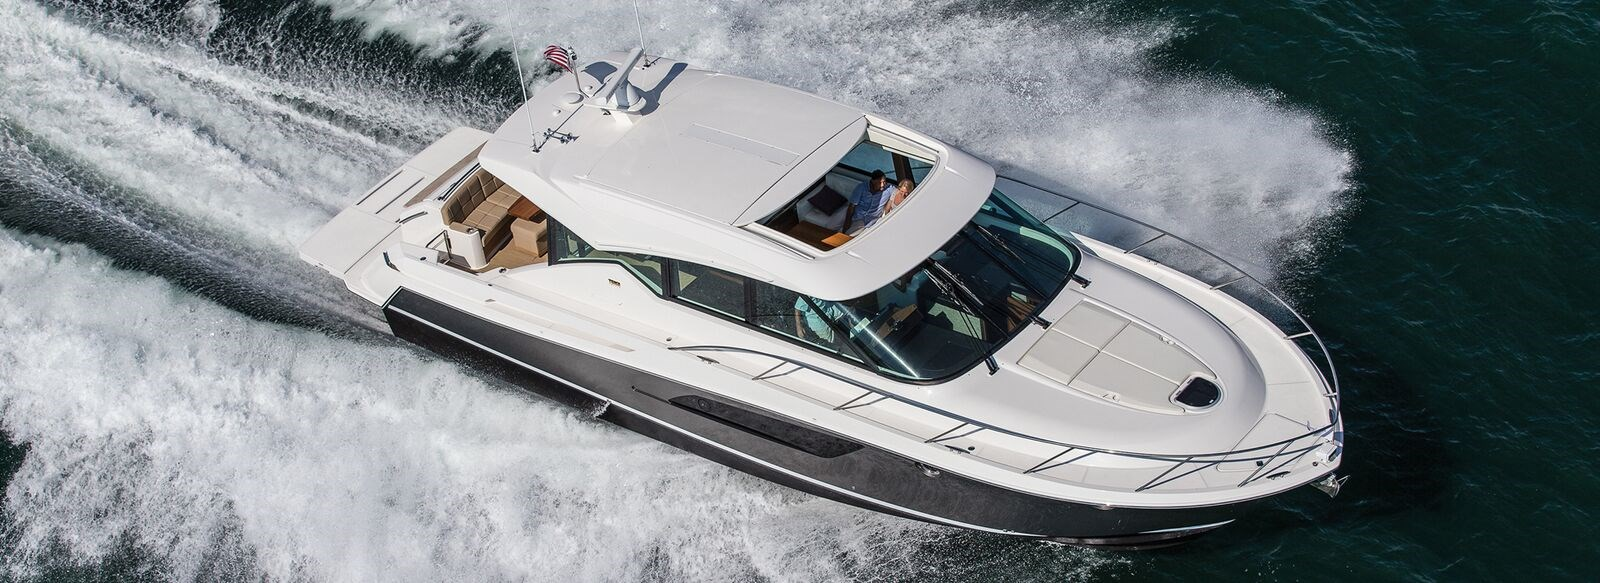 New Tiara C53 Yachts For Sale